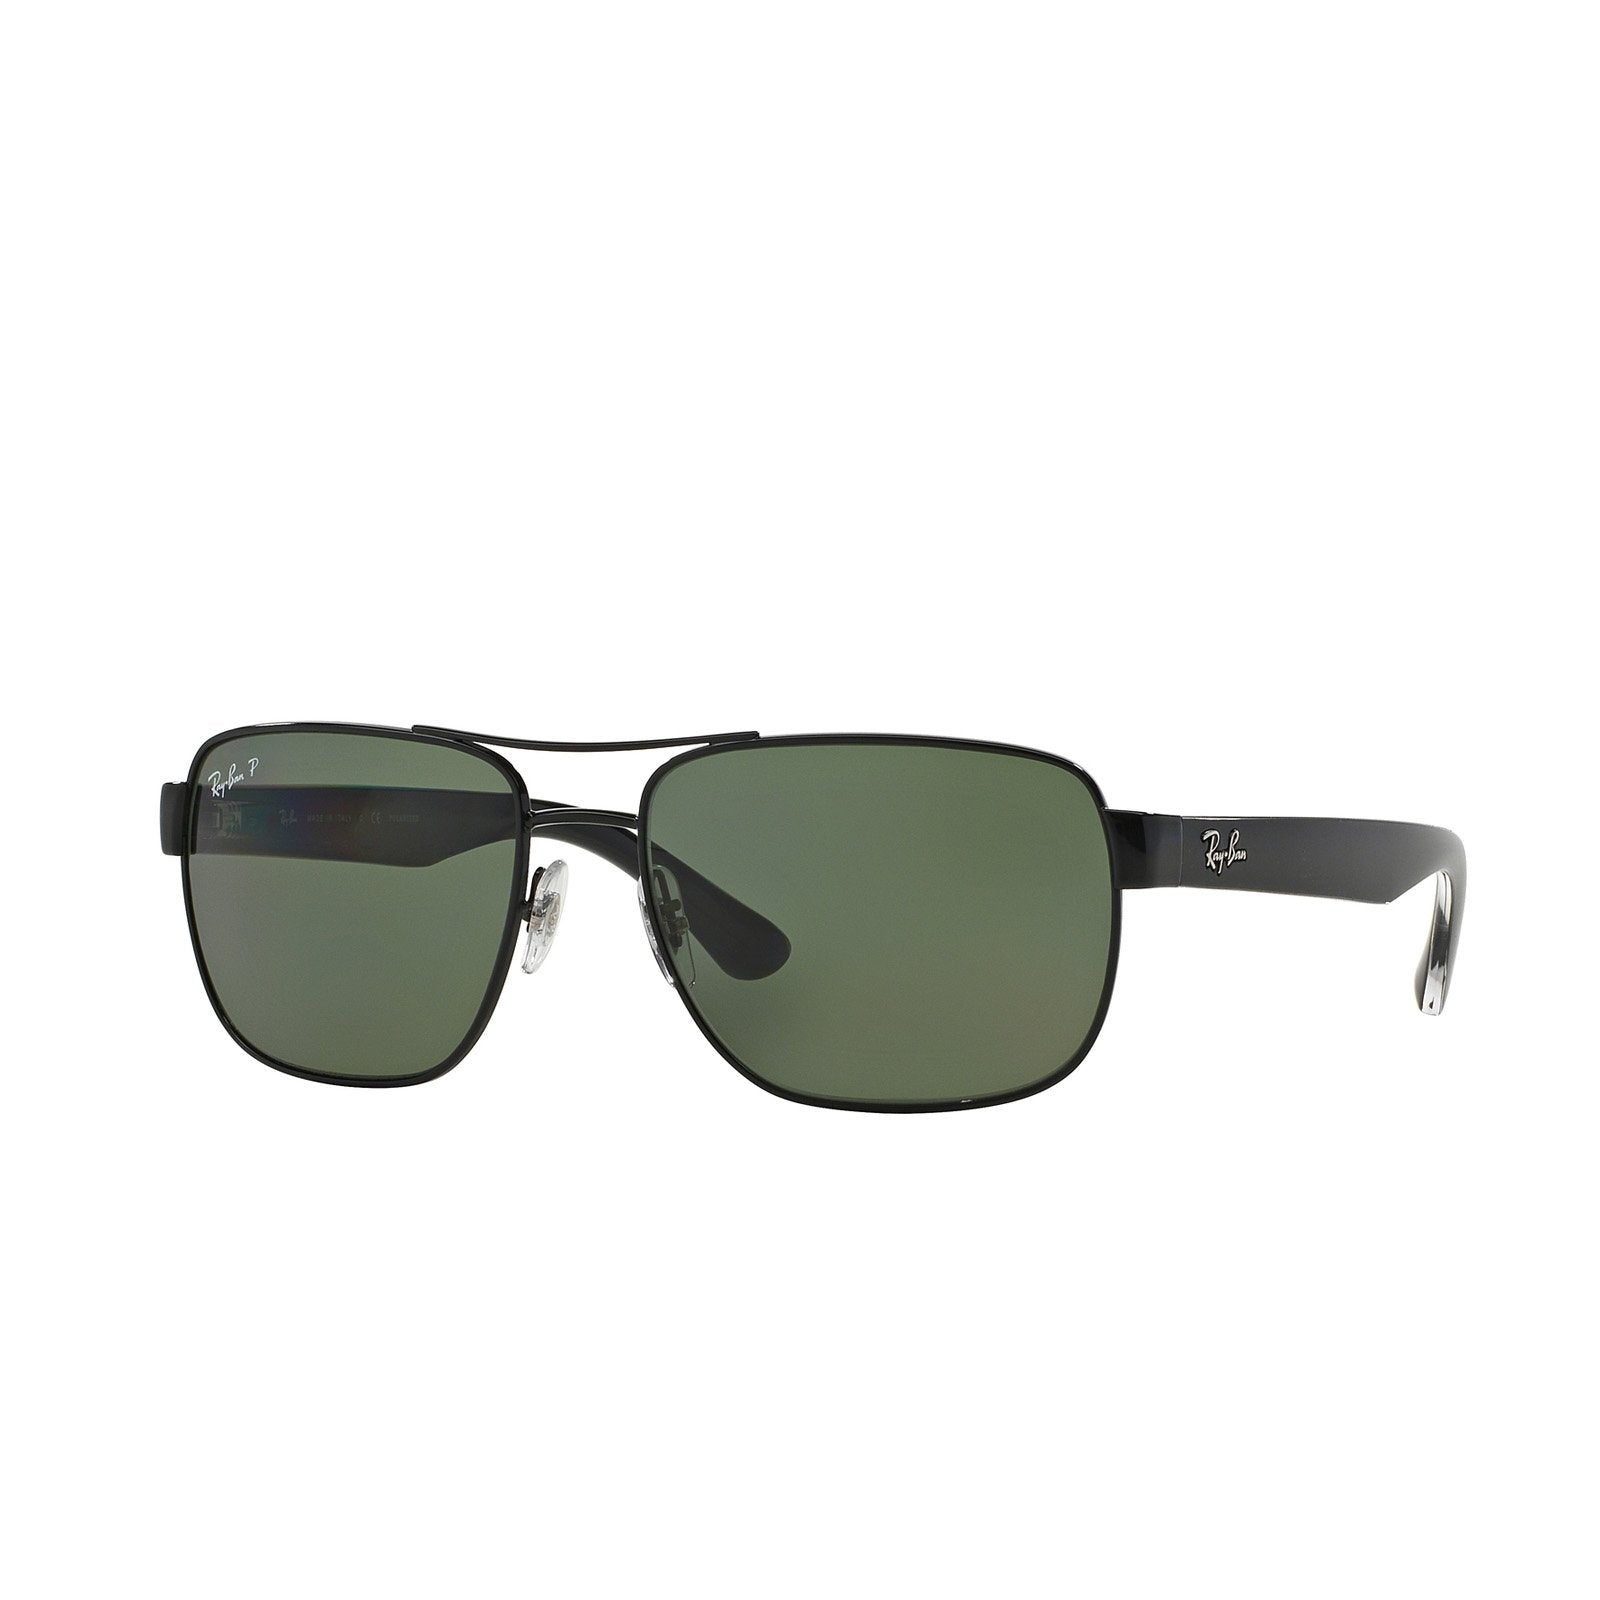 Ray-Ban RB3530 002/9A Sunglasses